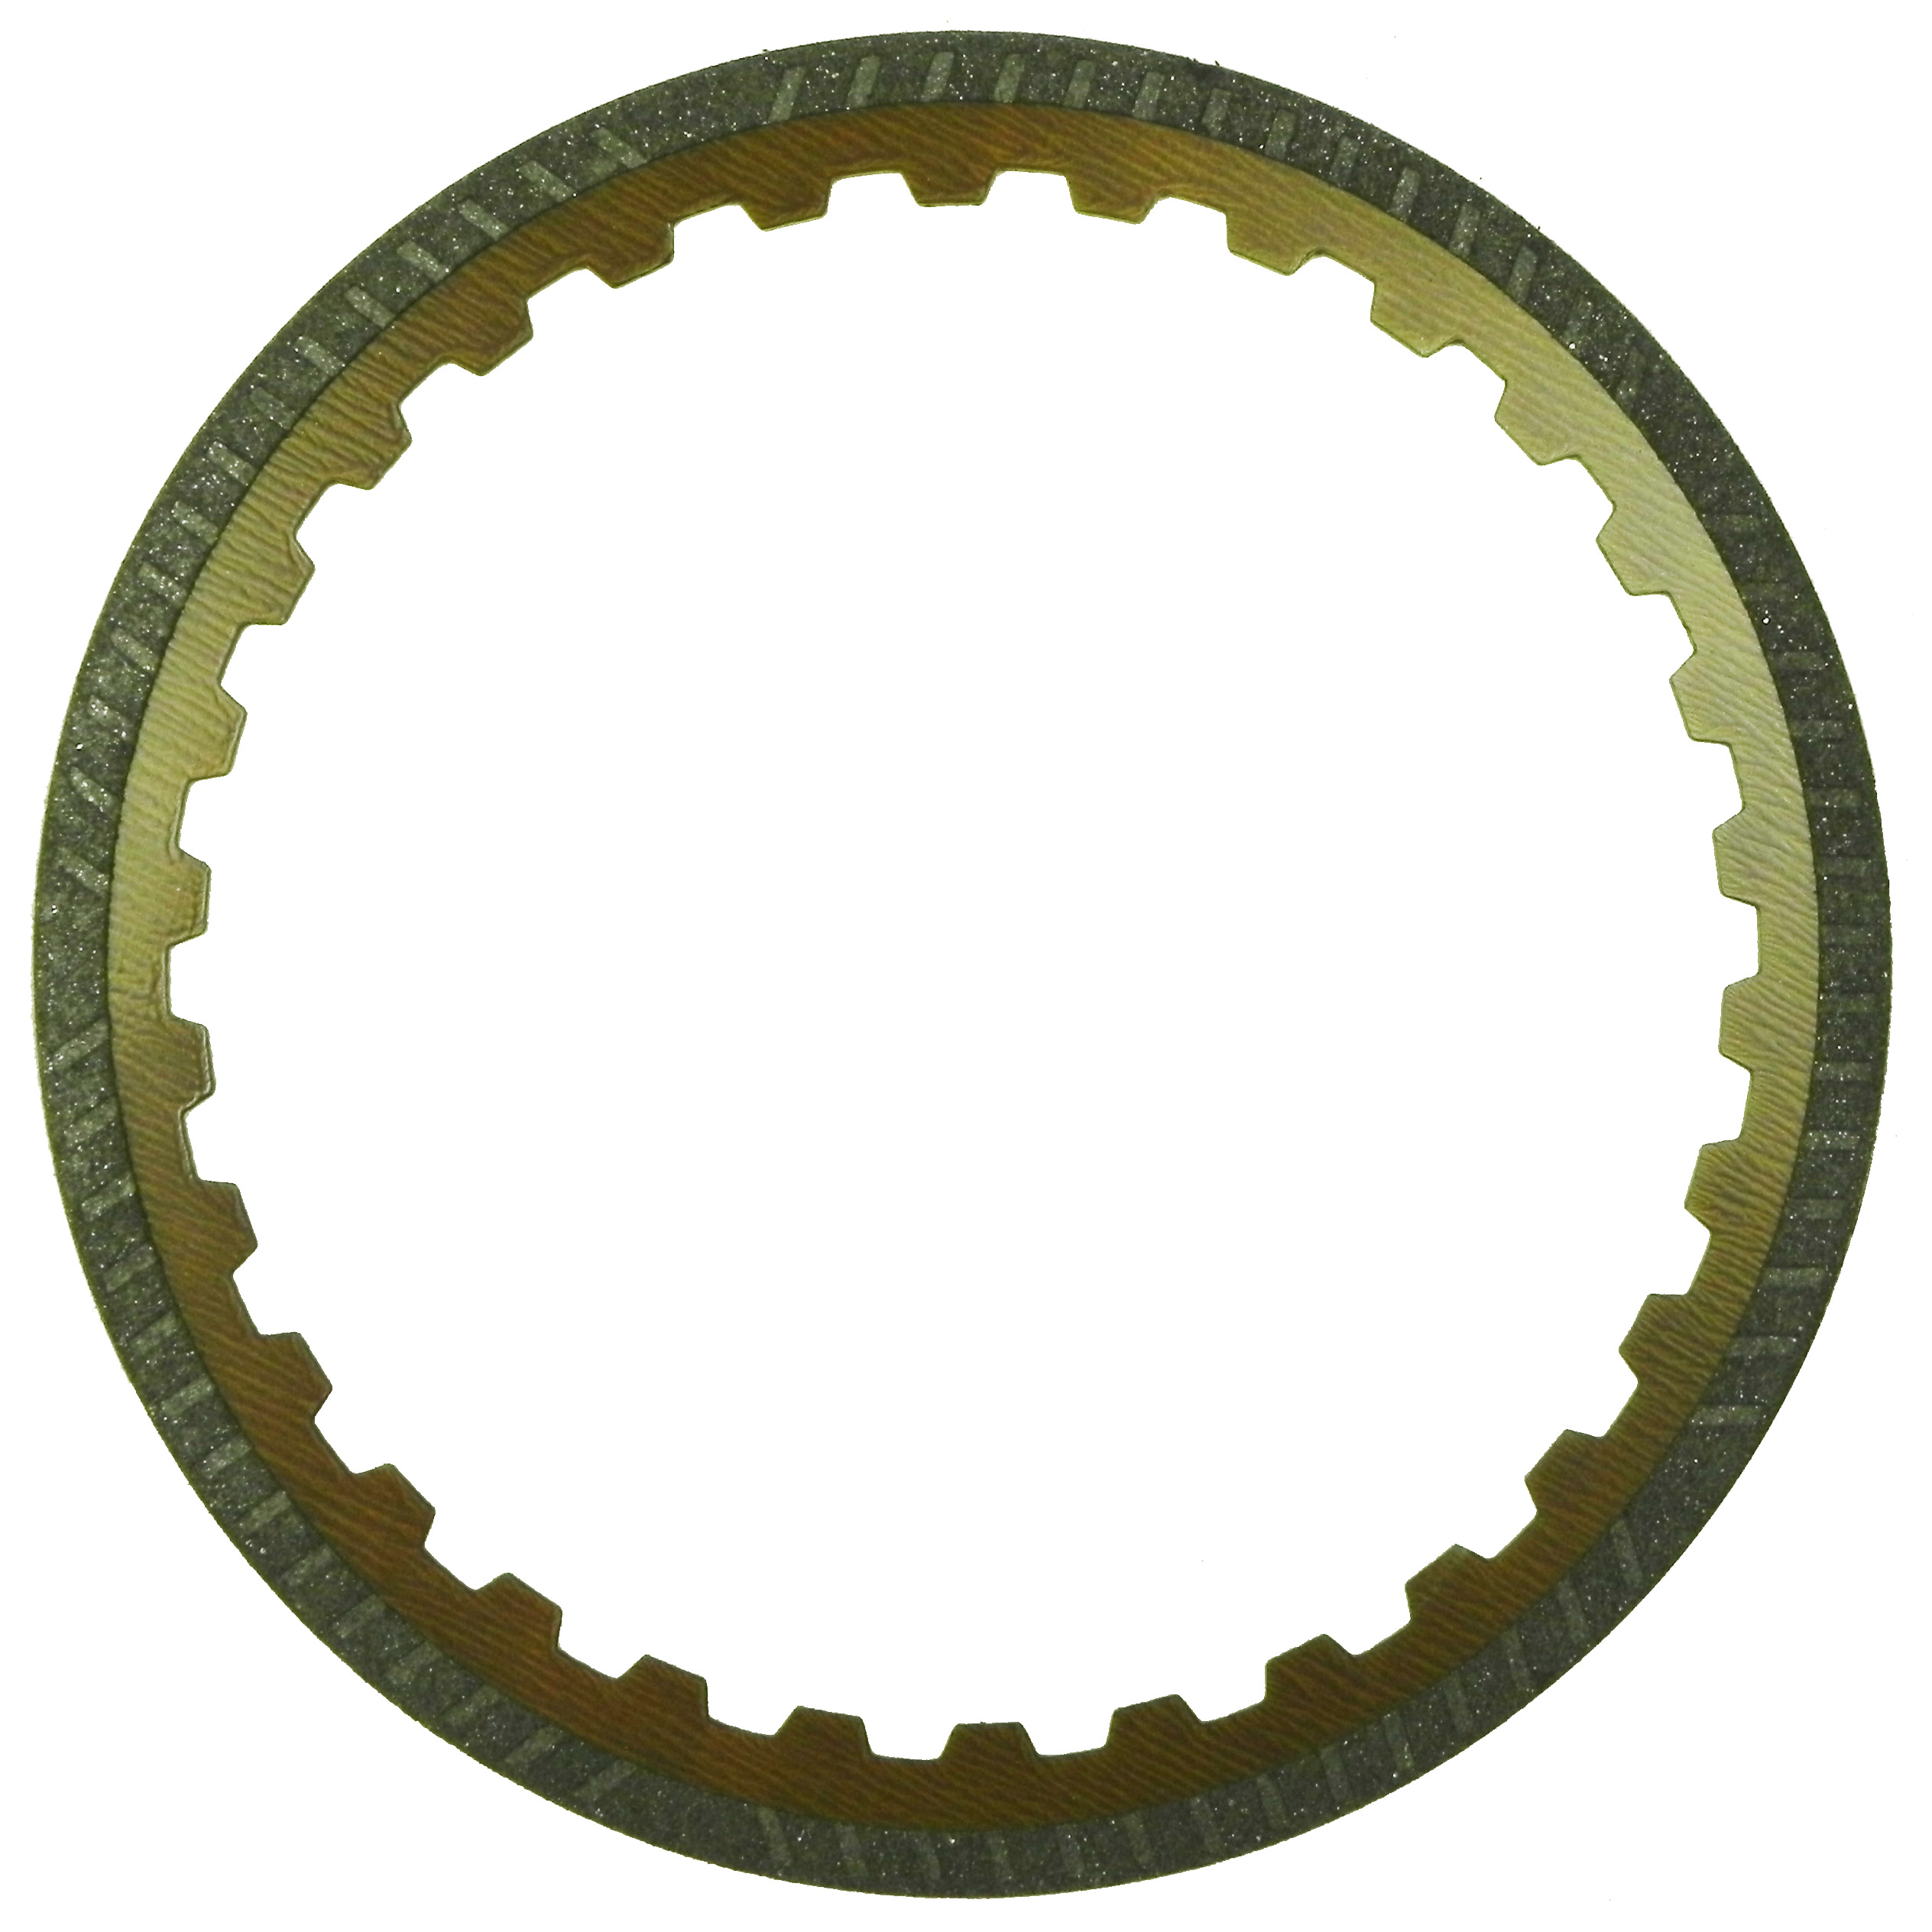 R574145 | 1995-2004 Friction Clutch Plate High Energy B (Direct), D (Low/Reverse) Clutch High Energy